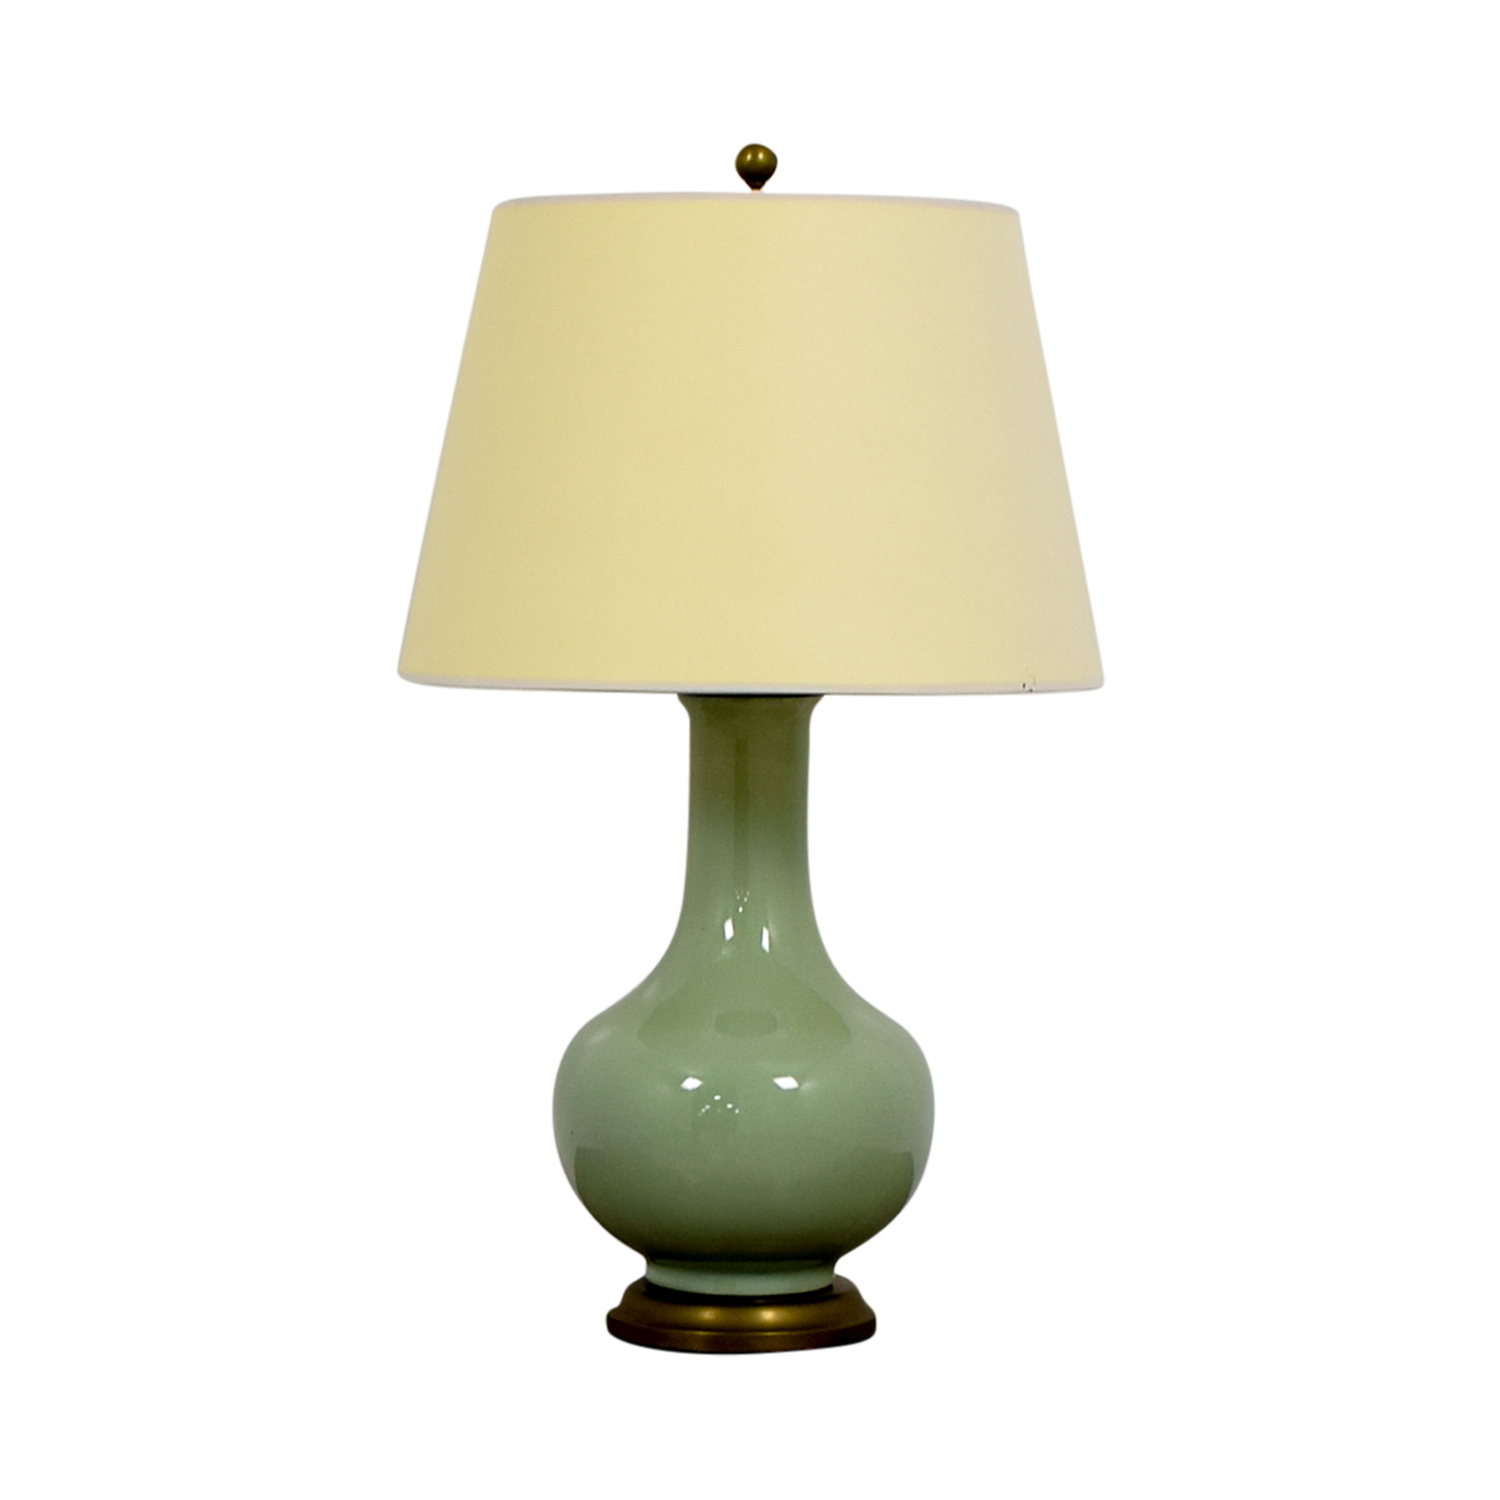 Williams Sonoma Home Williams Sonoma Home Mint Green Ceramic and Brass Table Lamp Mint